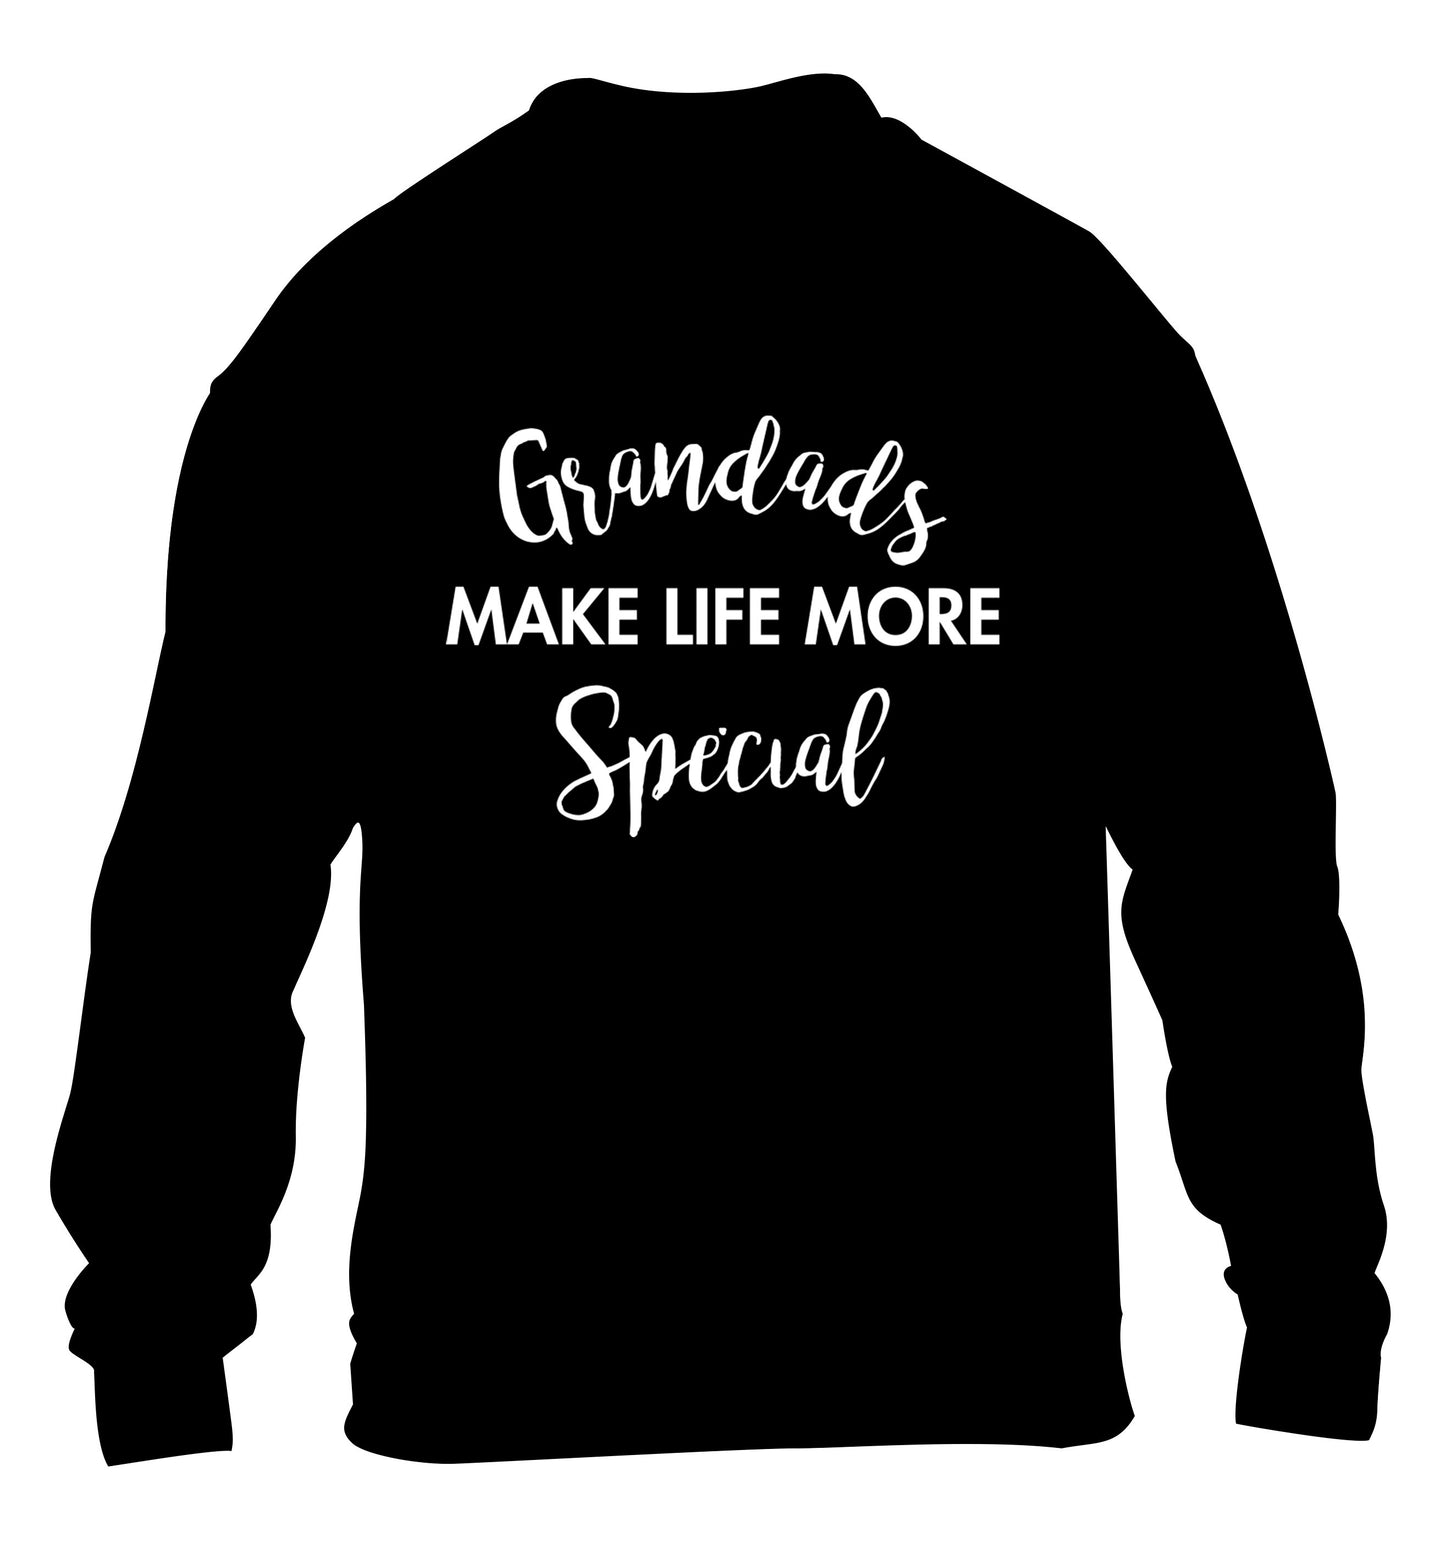 Grandads make life more special children's black sweater 12-14 Years